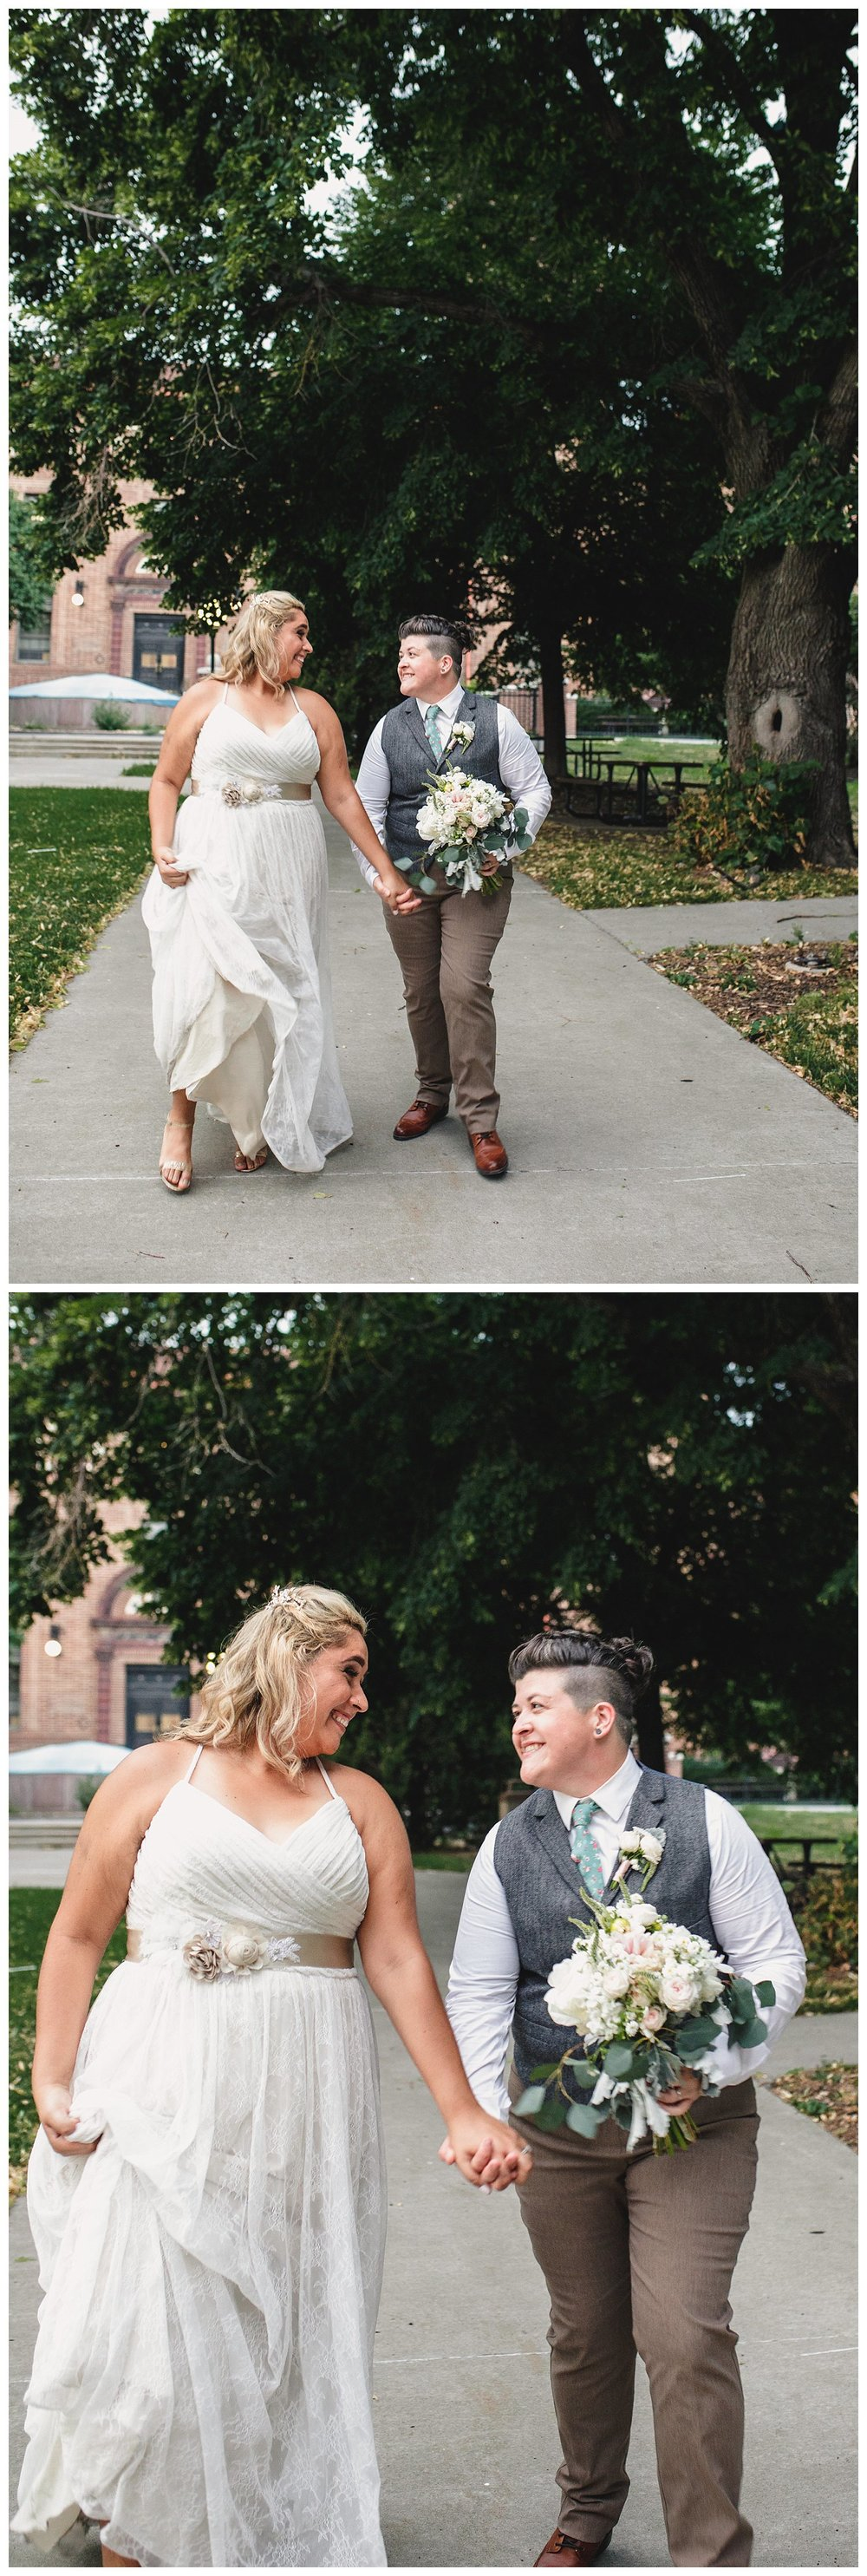 Kelsey_Diane_Photography_The_Vow_Exchange_Kansas_City_LGBT_Friendly_Wedding_Photographer_Kansas_City_Scout_Ica_0748.jpg